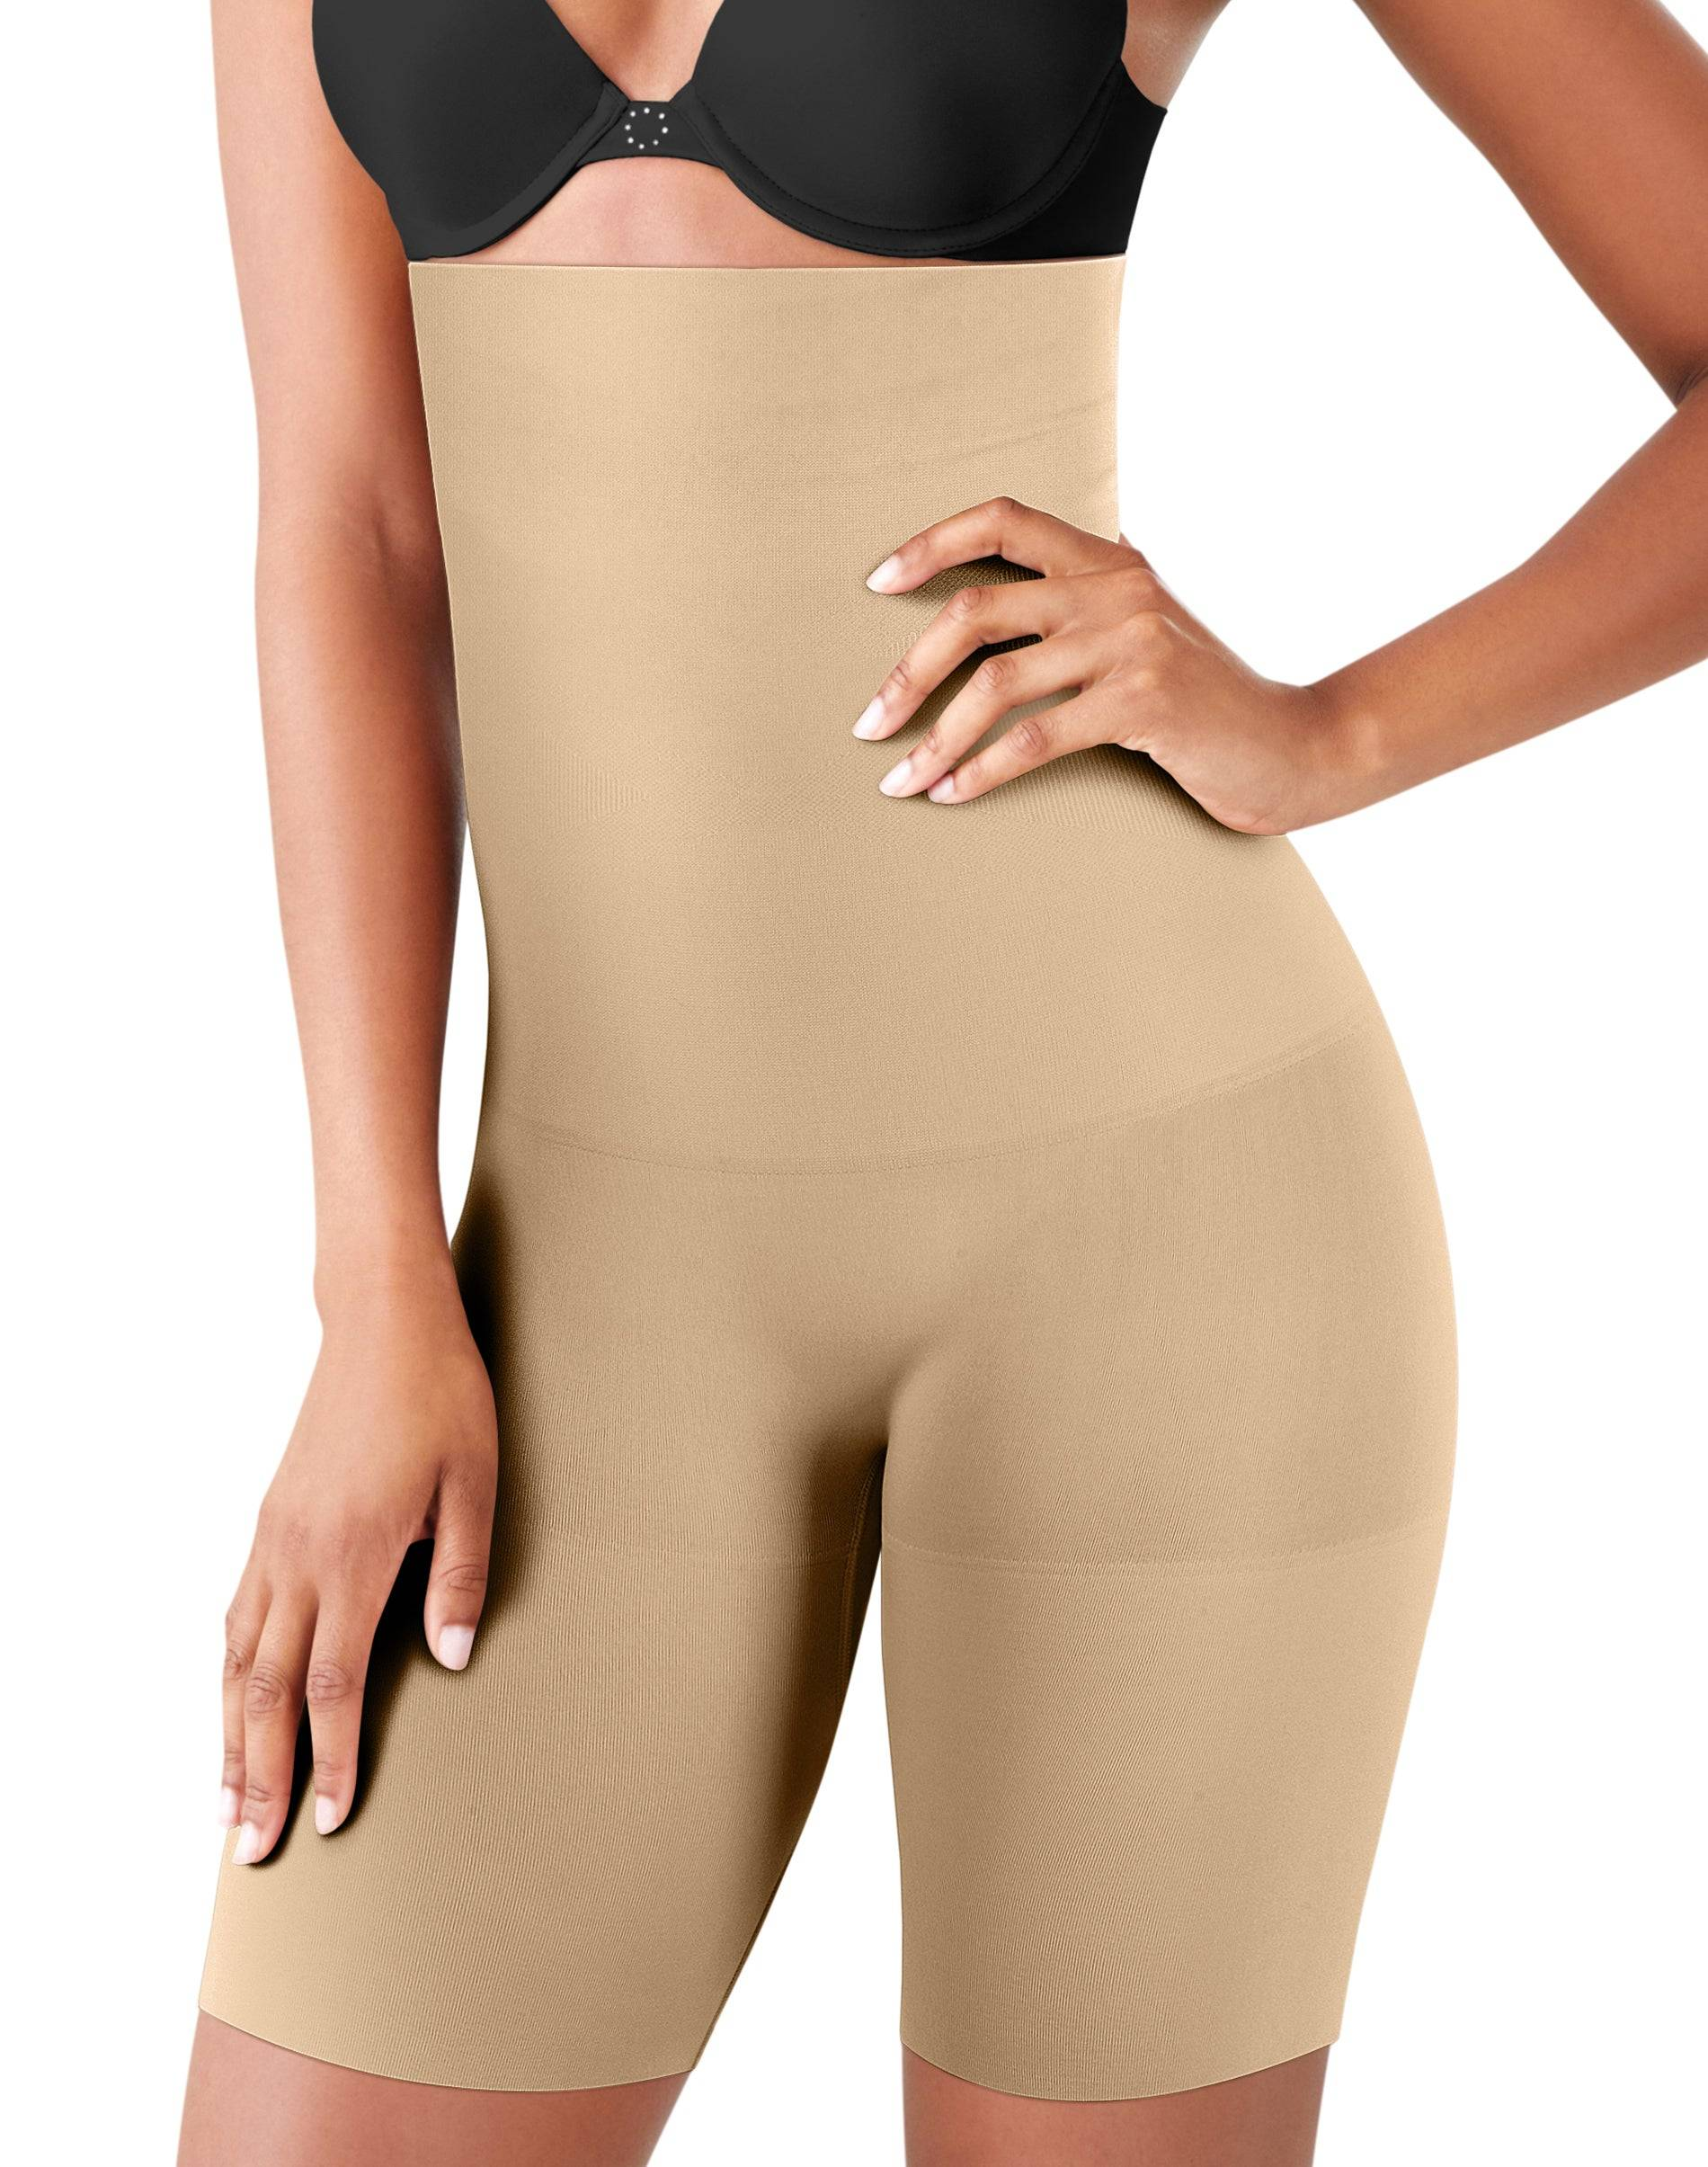 Maidenform High Waist Thigh Slimmer Latte Lift 2XL Women's